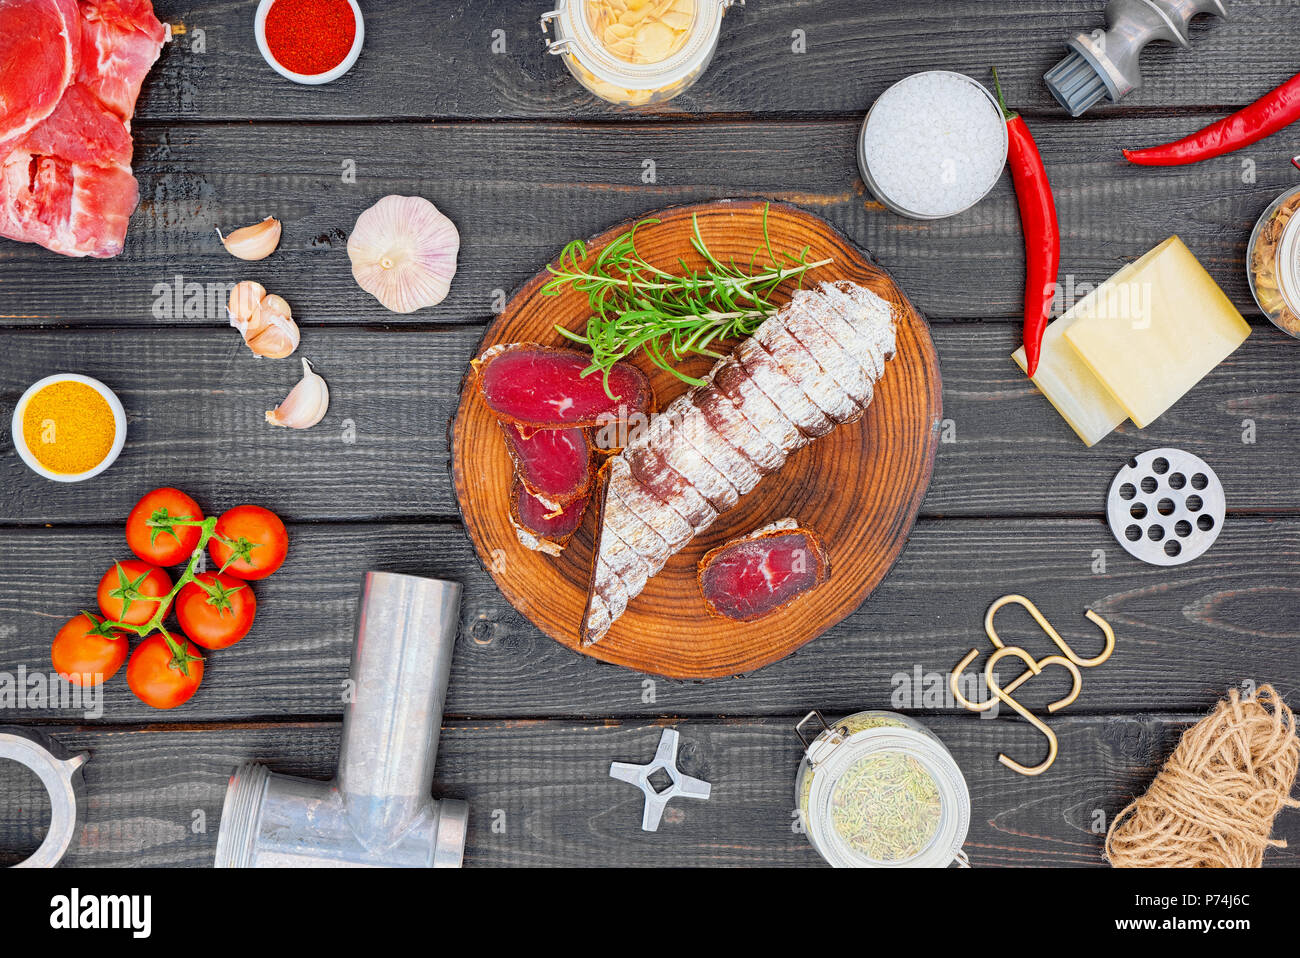 Ingredients of the production of cured sausage from the raw material to the finished product. - Stock Image